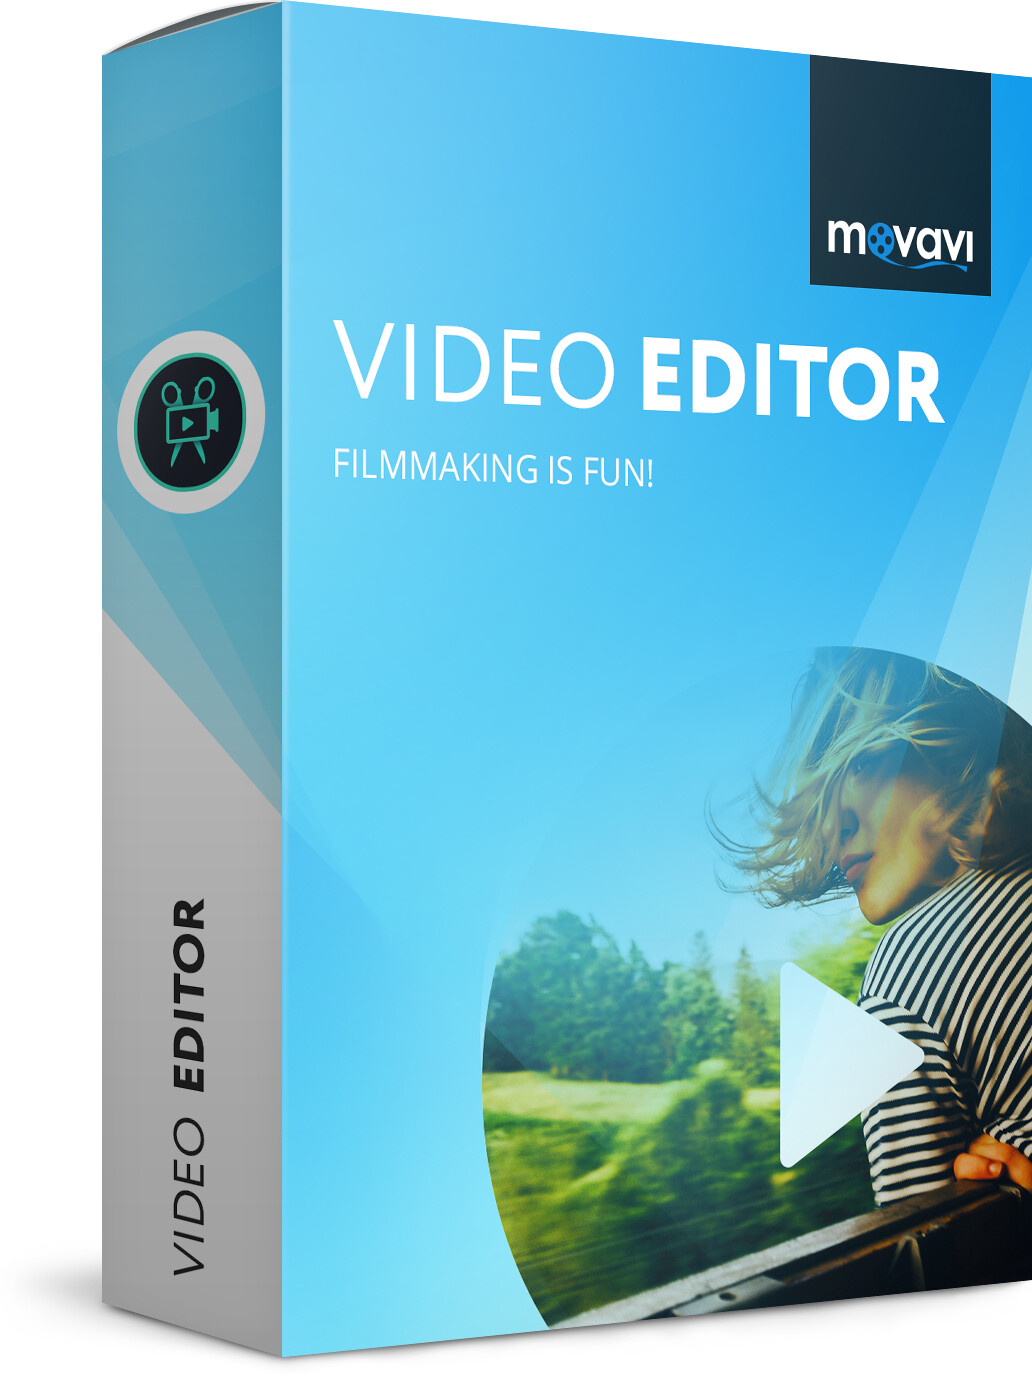 Making Home Movies Using Movavi Video Editor